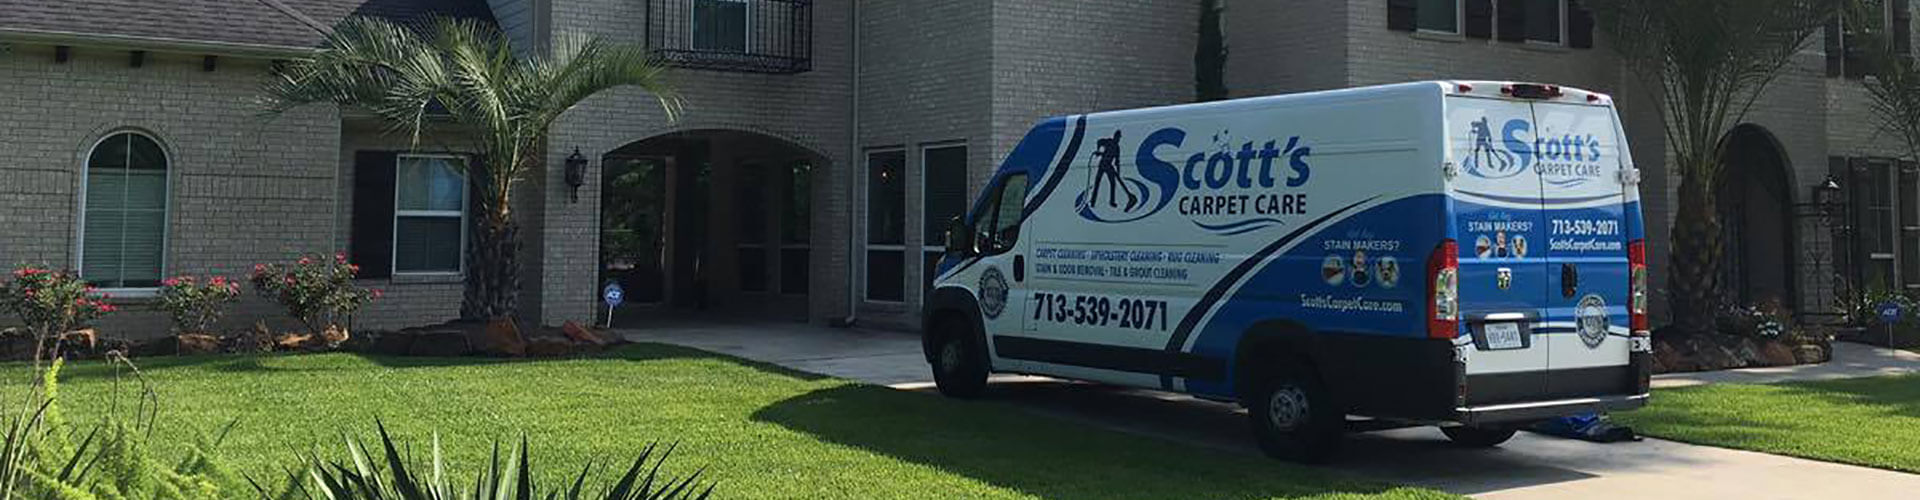 Scott S Carpet Care Carpet Cleaning In Humble Texas